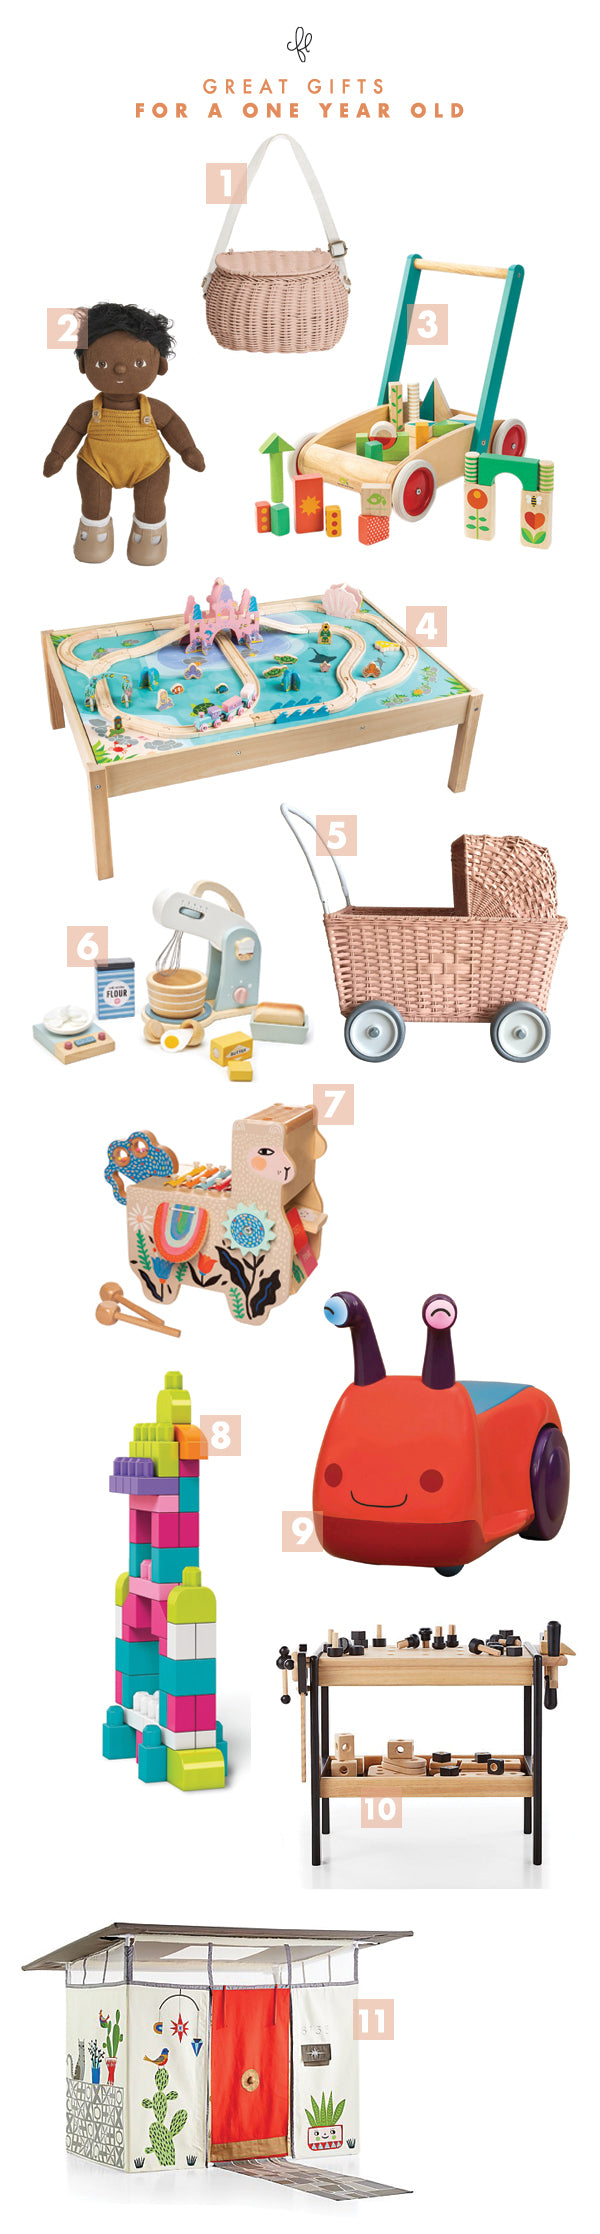 Gift Guide for One-Year Olds